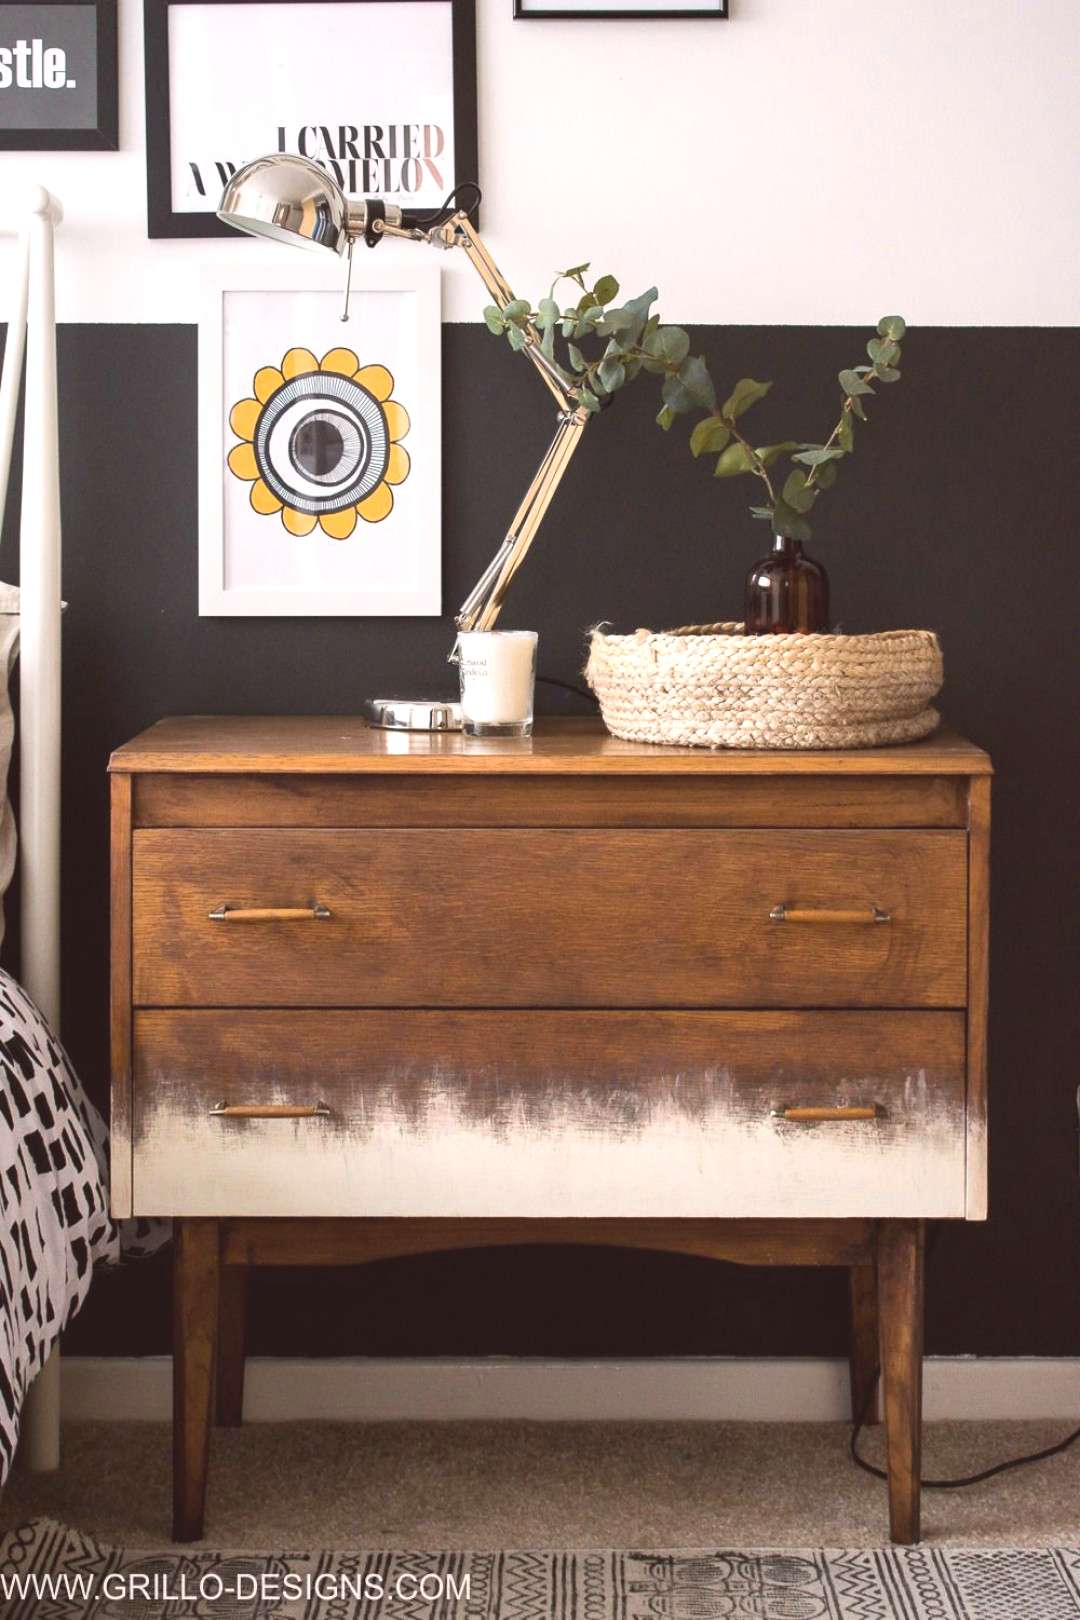 Painted Gradient Dresser Treatment By Grillo Designs Featured On Funky Junk Interiors